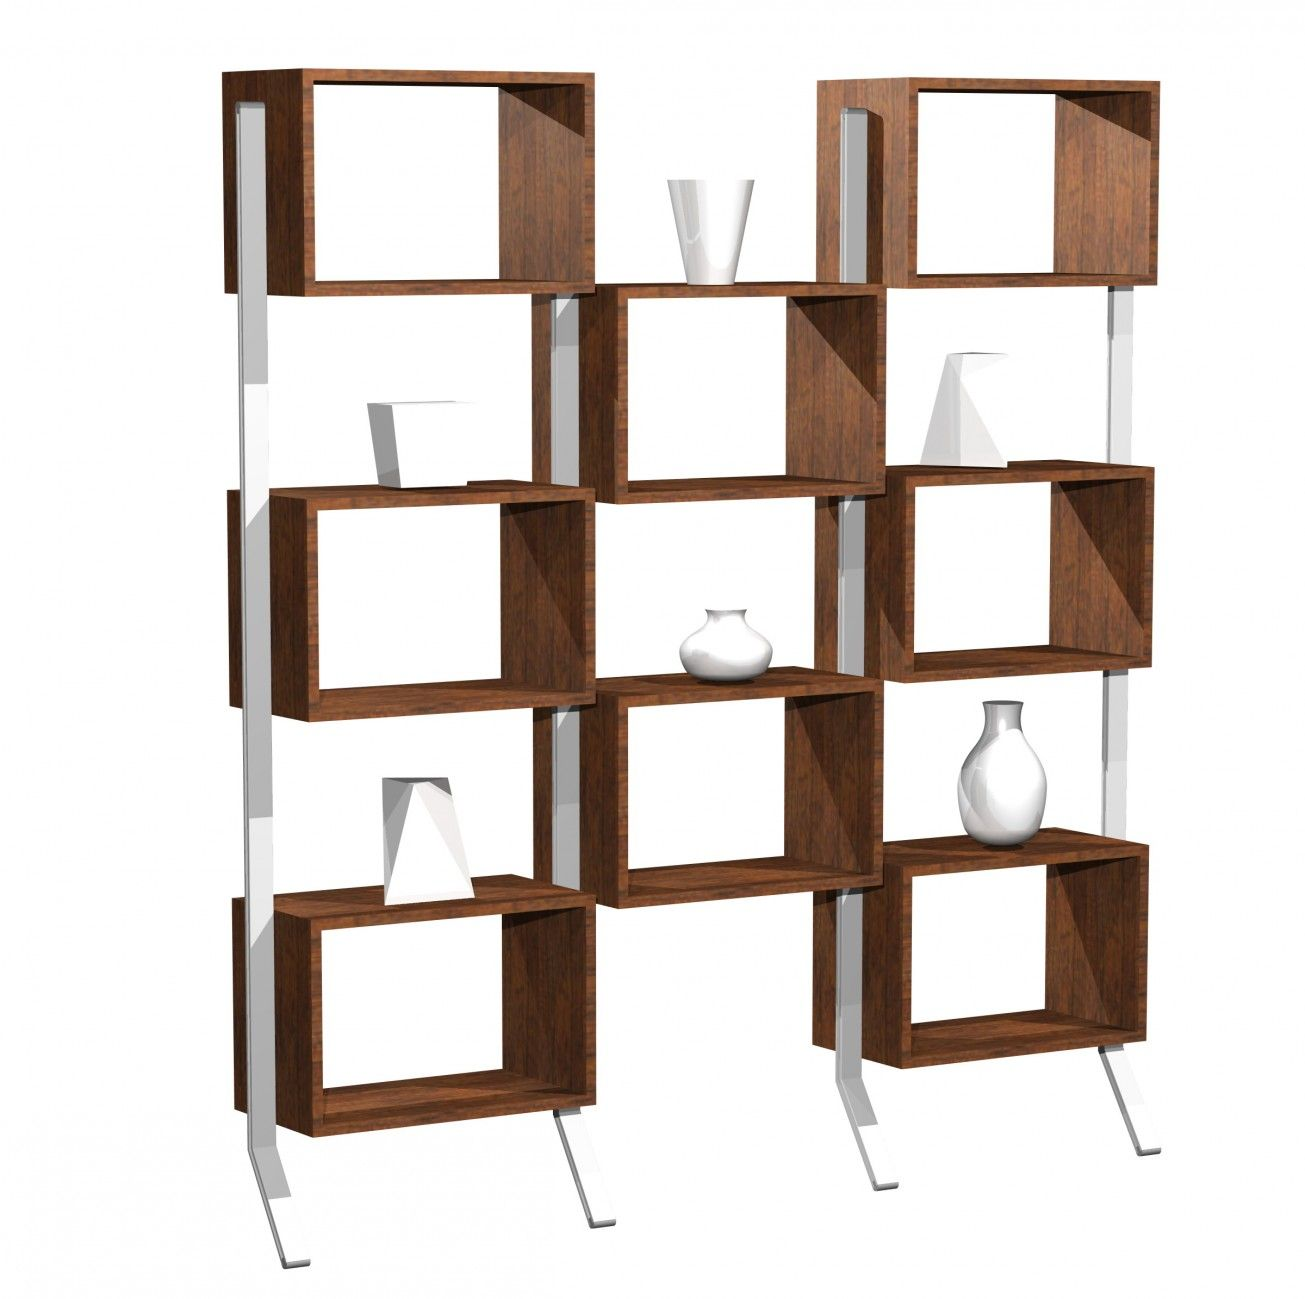 Exceptional Accessories U0026 Furniture,Stunning Freestanding Modular Shelving Units With  Brown Wooden Cube Shelf And White Metal Shelf Holder,Best Collection Modular  ... Design